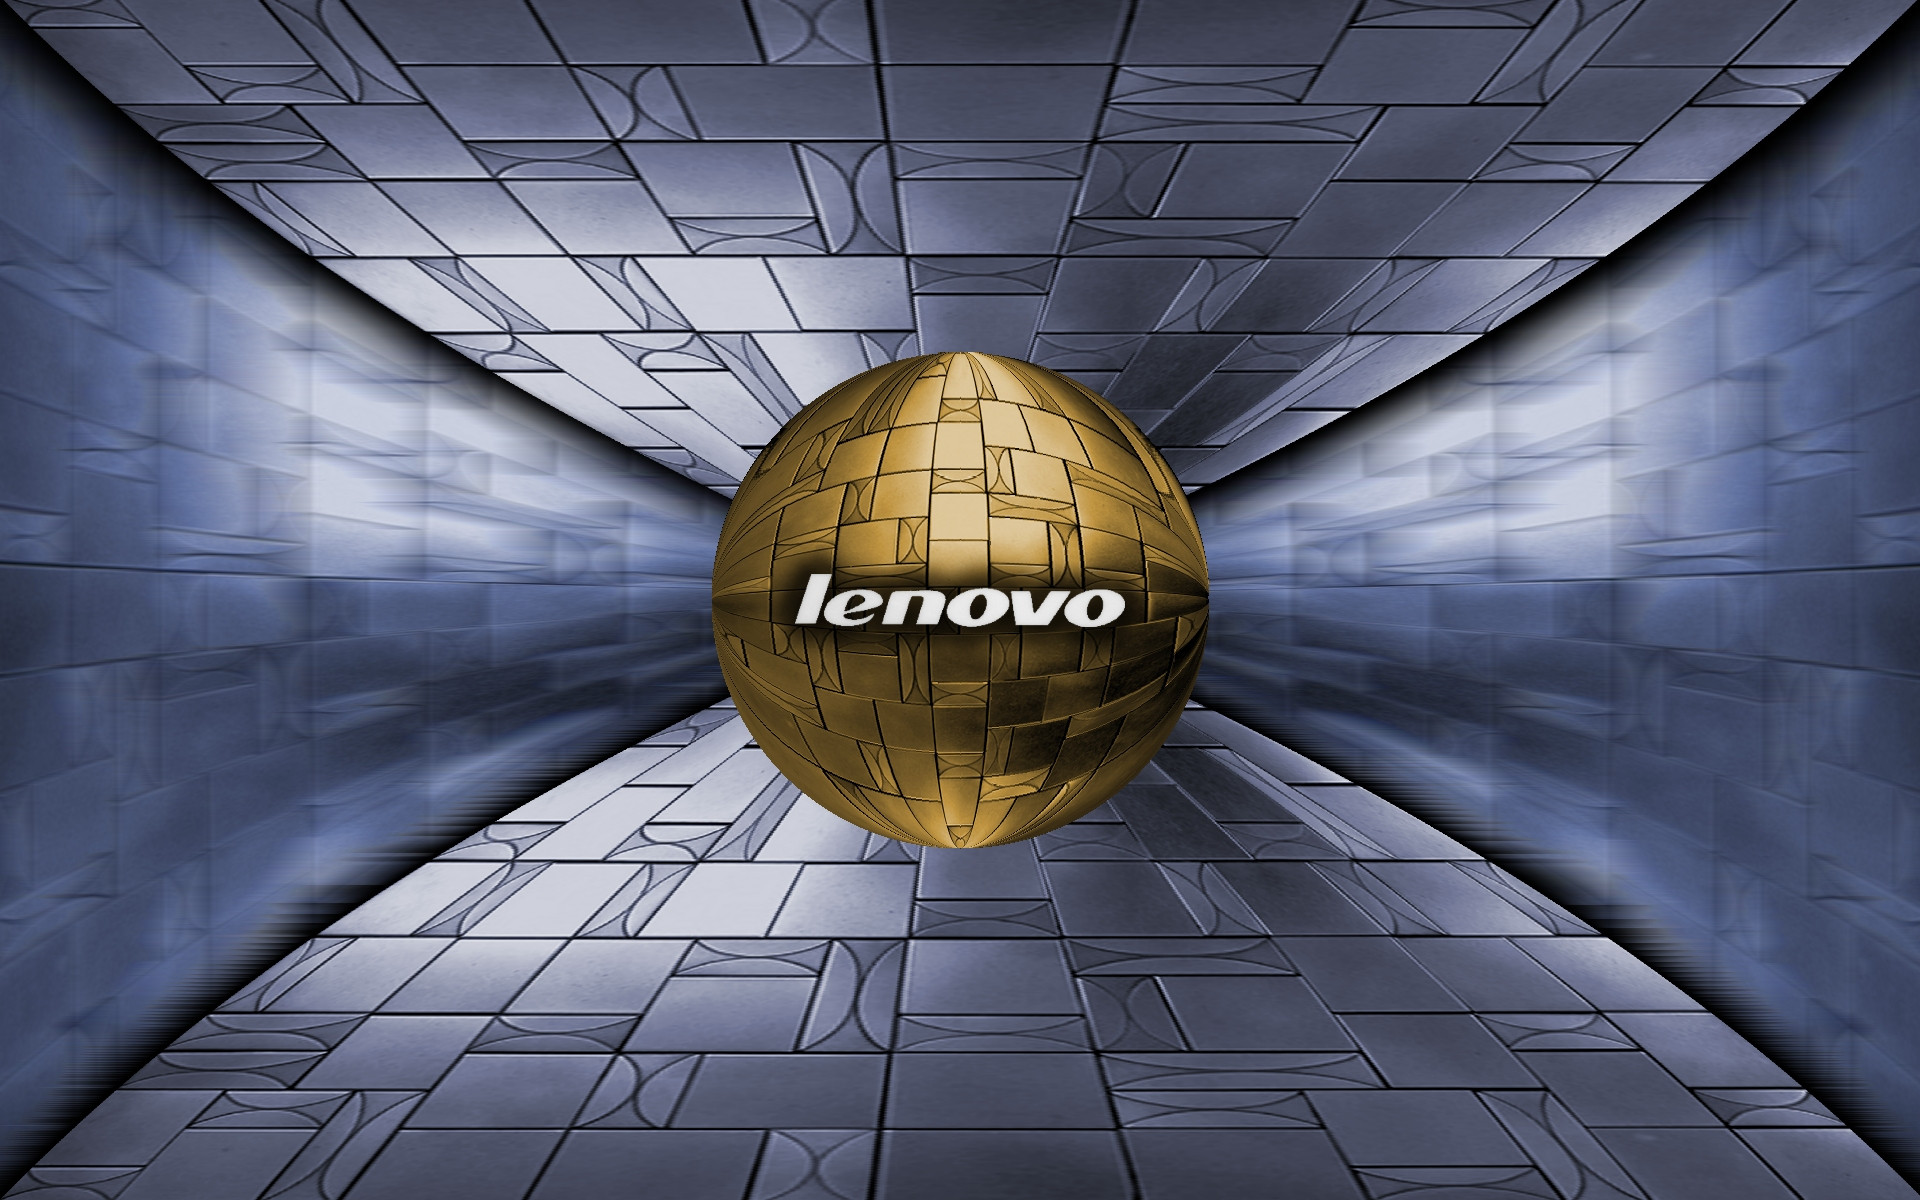 Lenovo wallpapers hd full hd pictures - New lenovo background ...